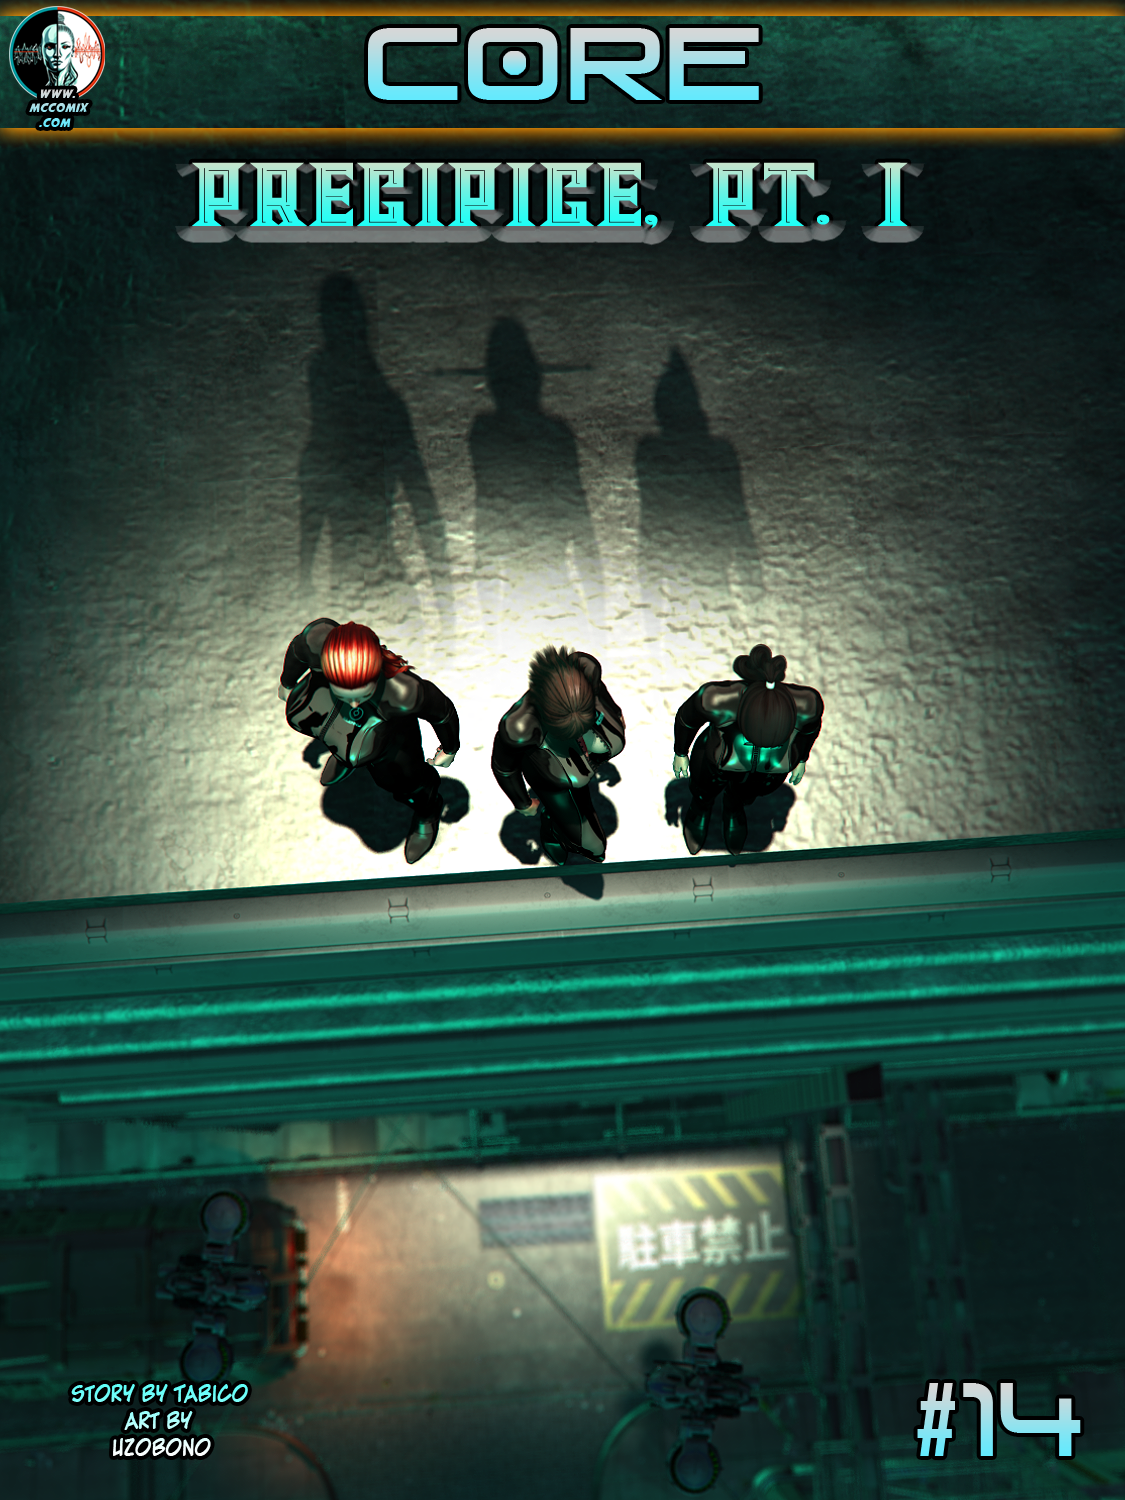 CORE Precipice Pt 1 cover with three women approaching a structure, long shadows stretching out behind them.